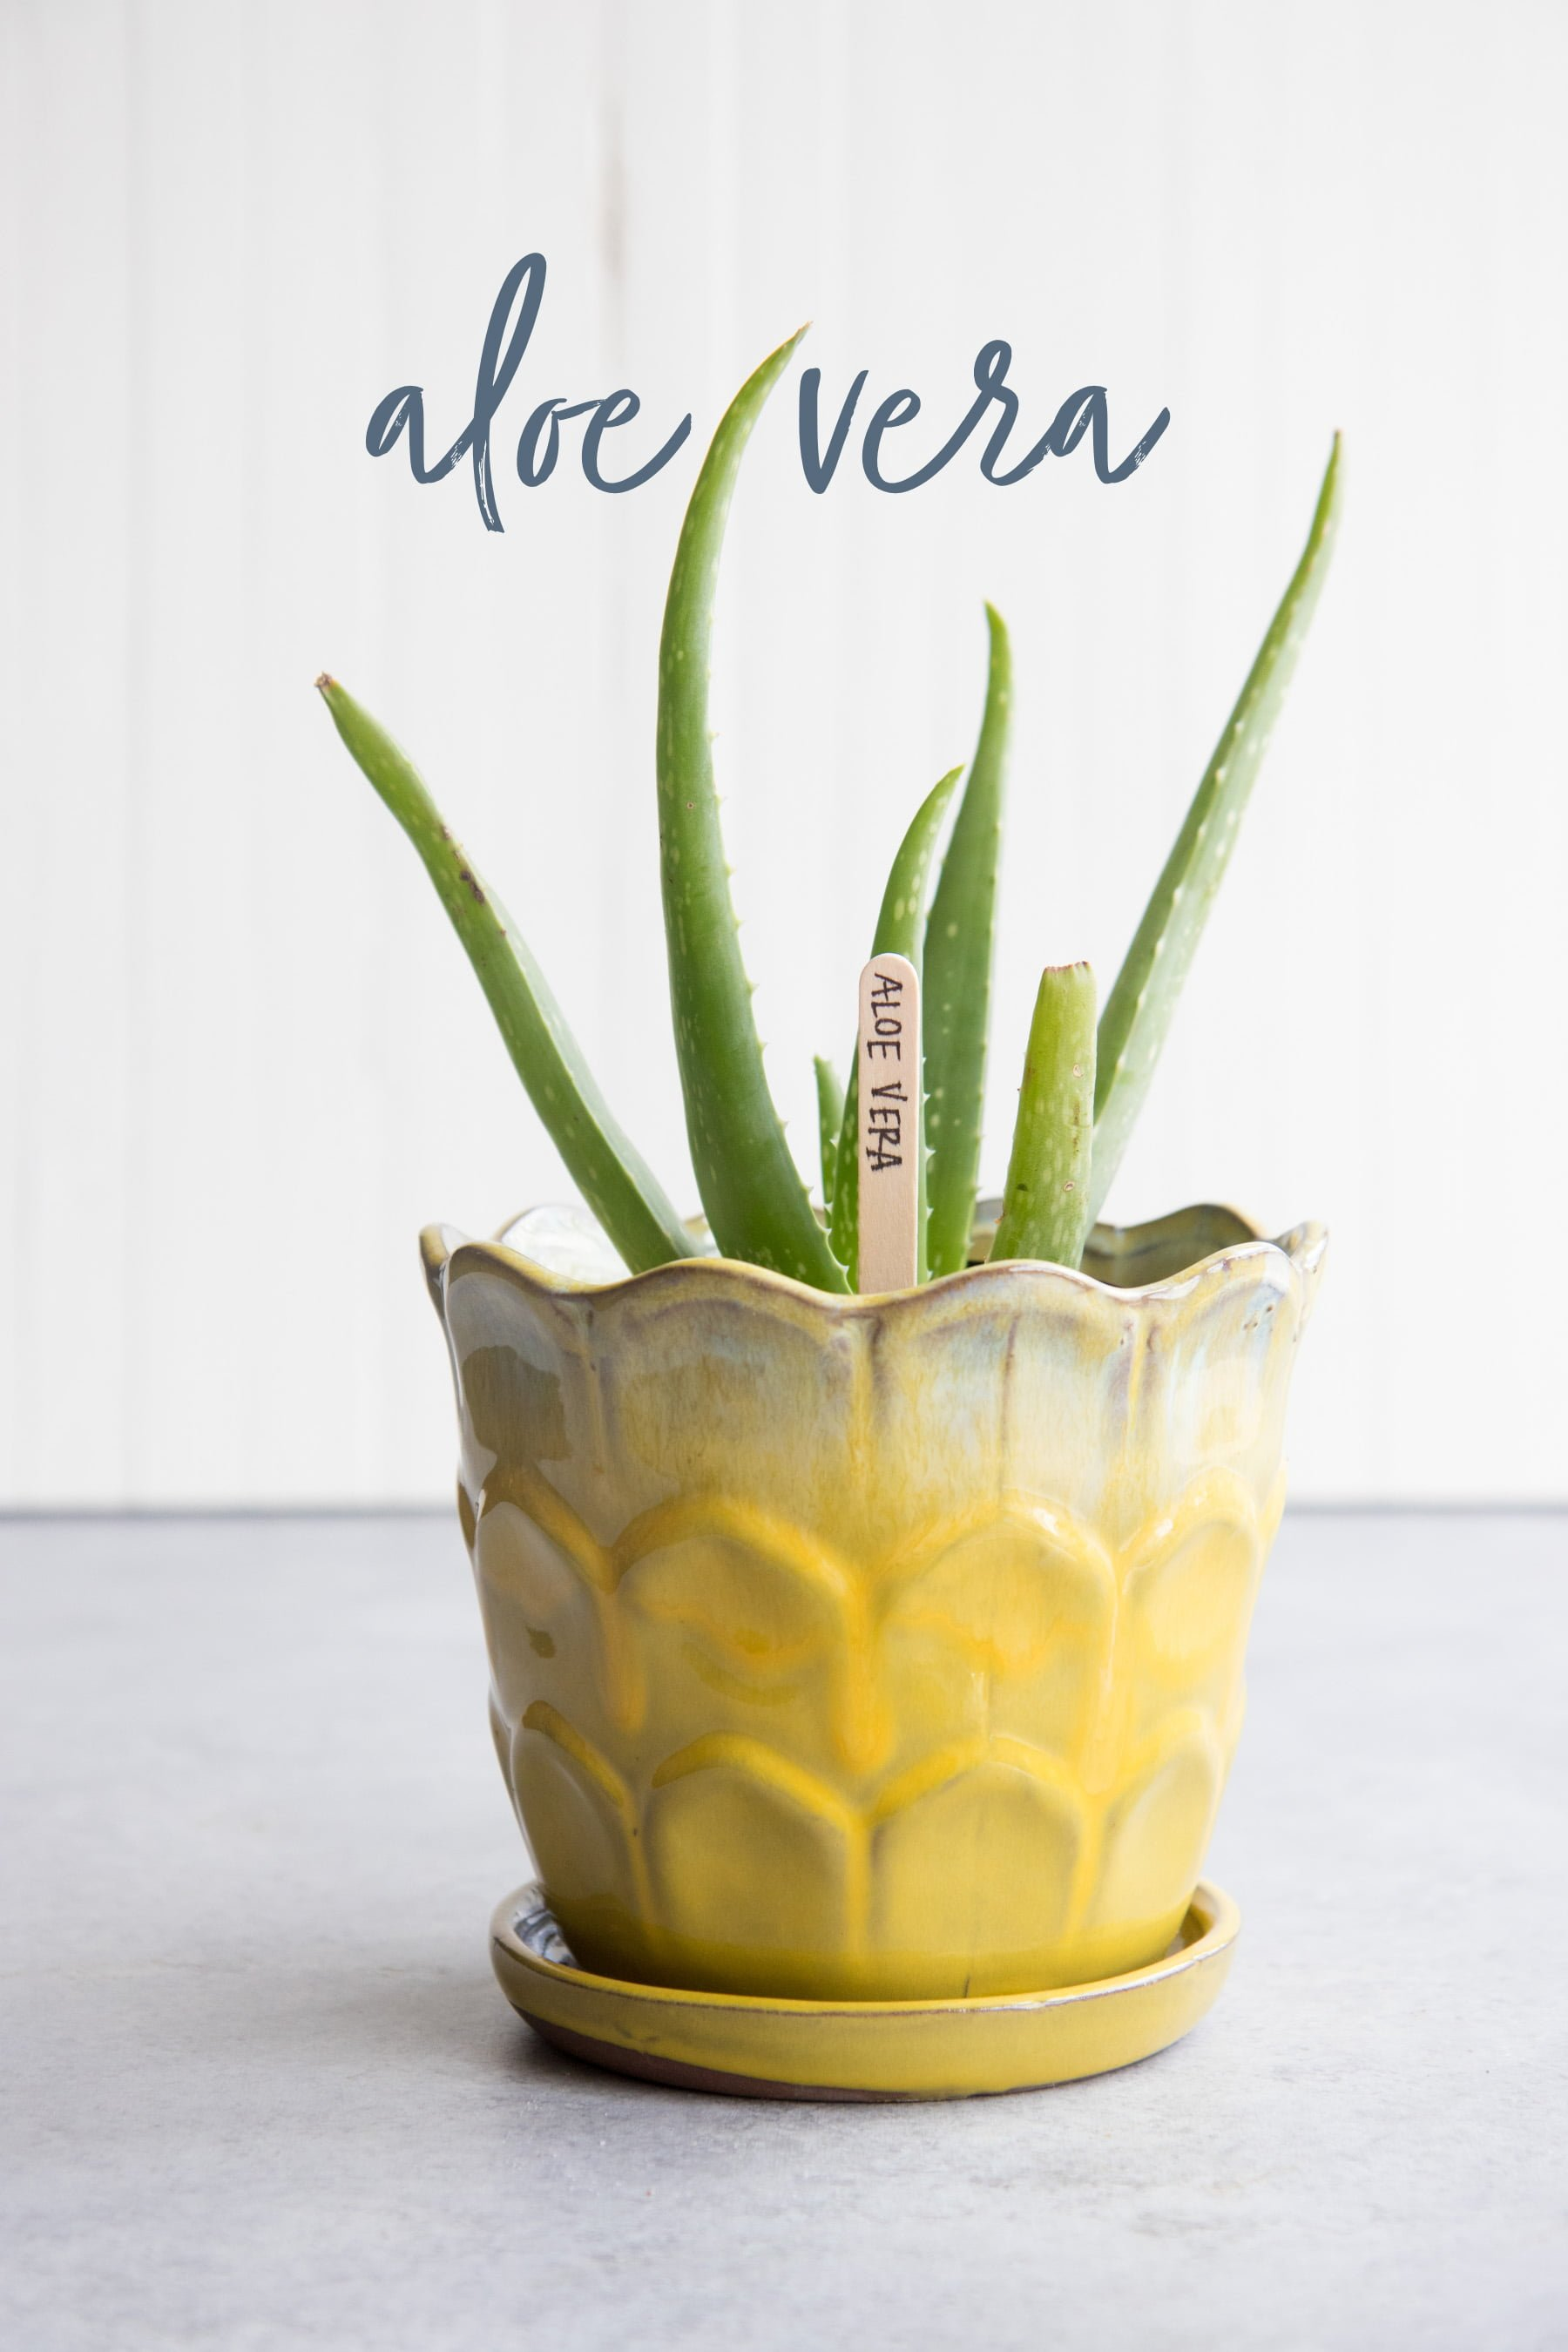 Aloe vera in a yellow flowerpot, with a text overlay